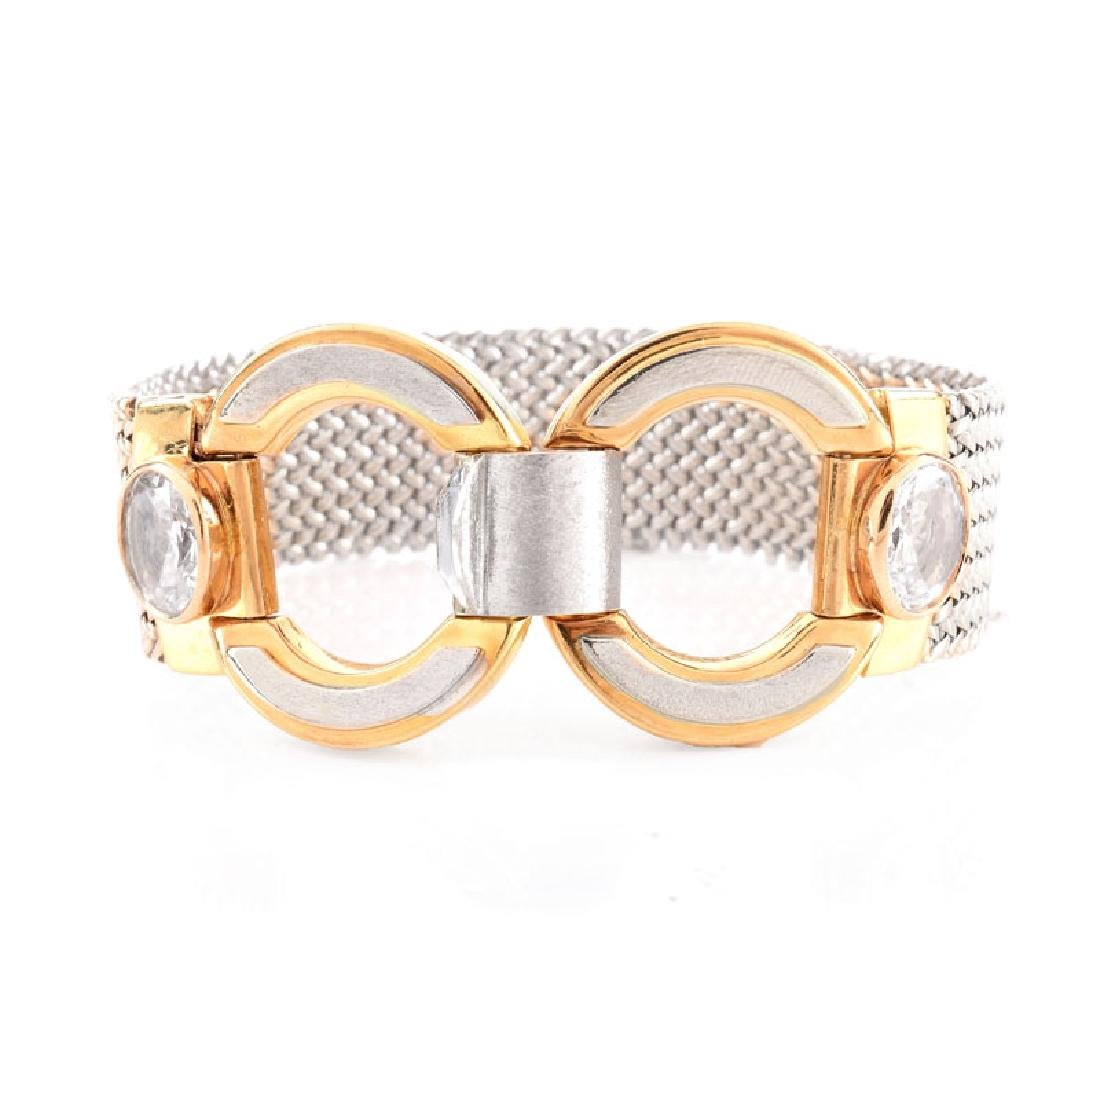 Vintage Italian 18 Karat Yellow and White Gold Mesh